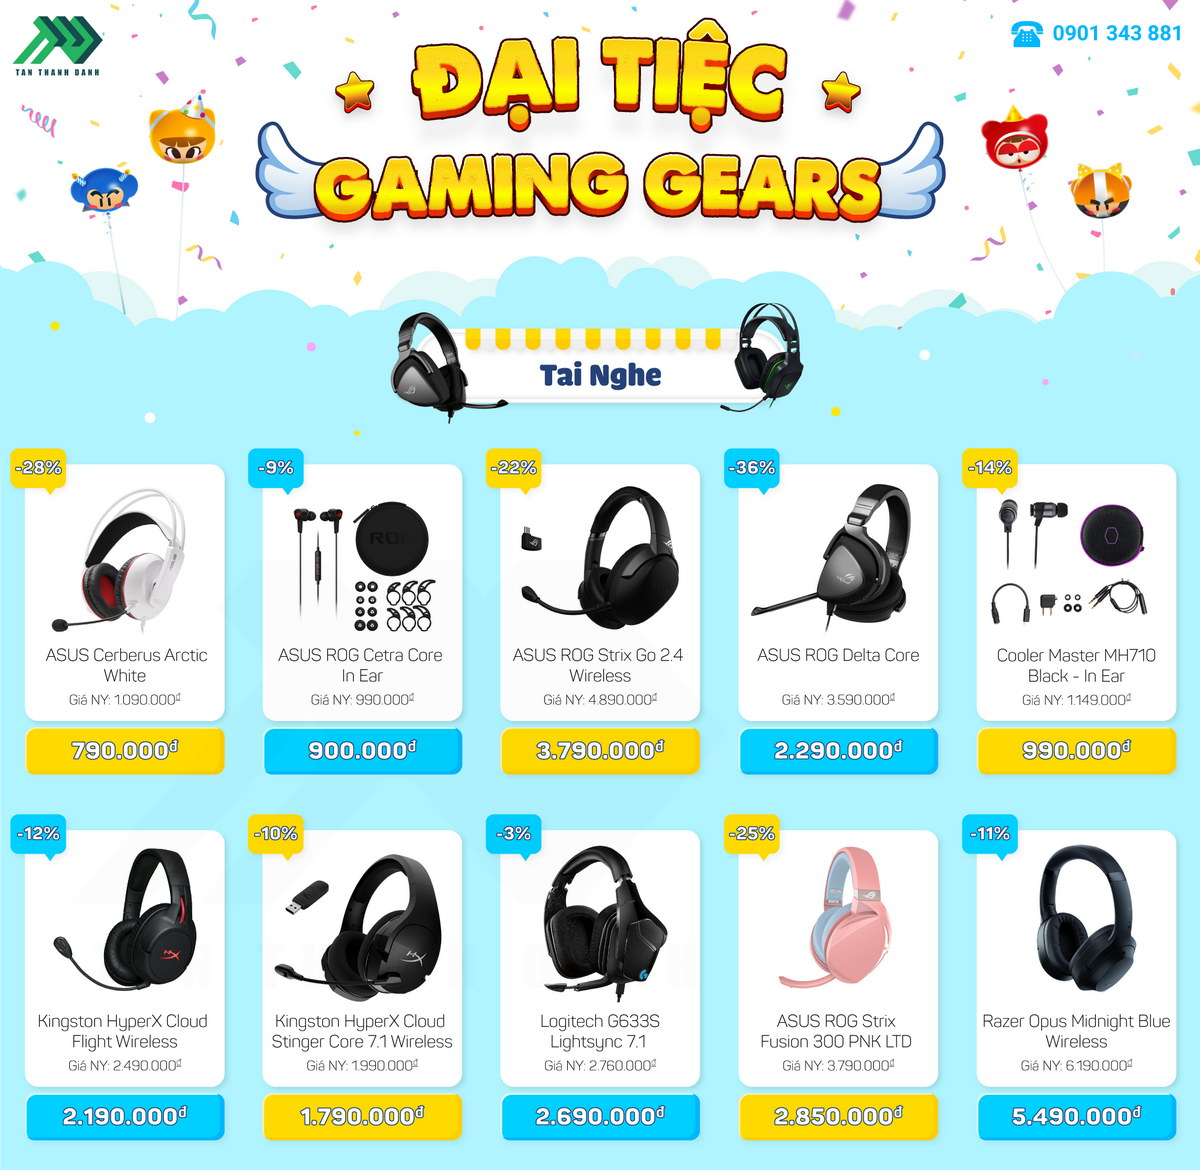 TTD Promotion 2010 DaiTiecGamingGears TaiNghe v2